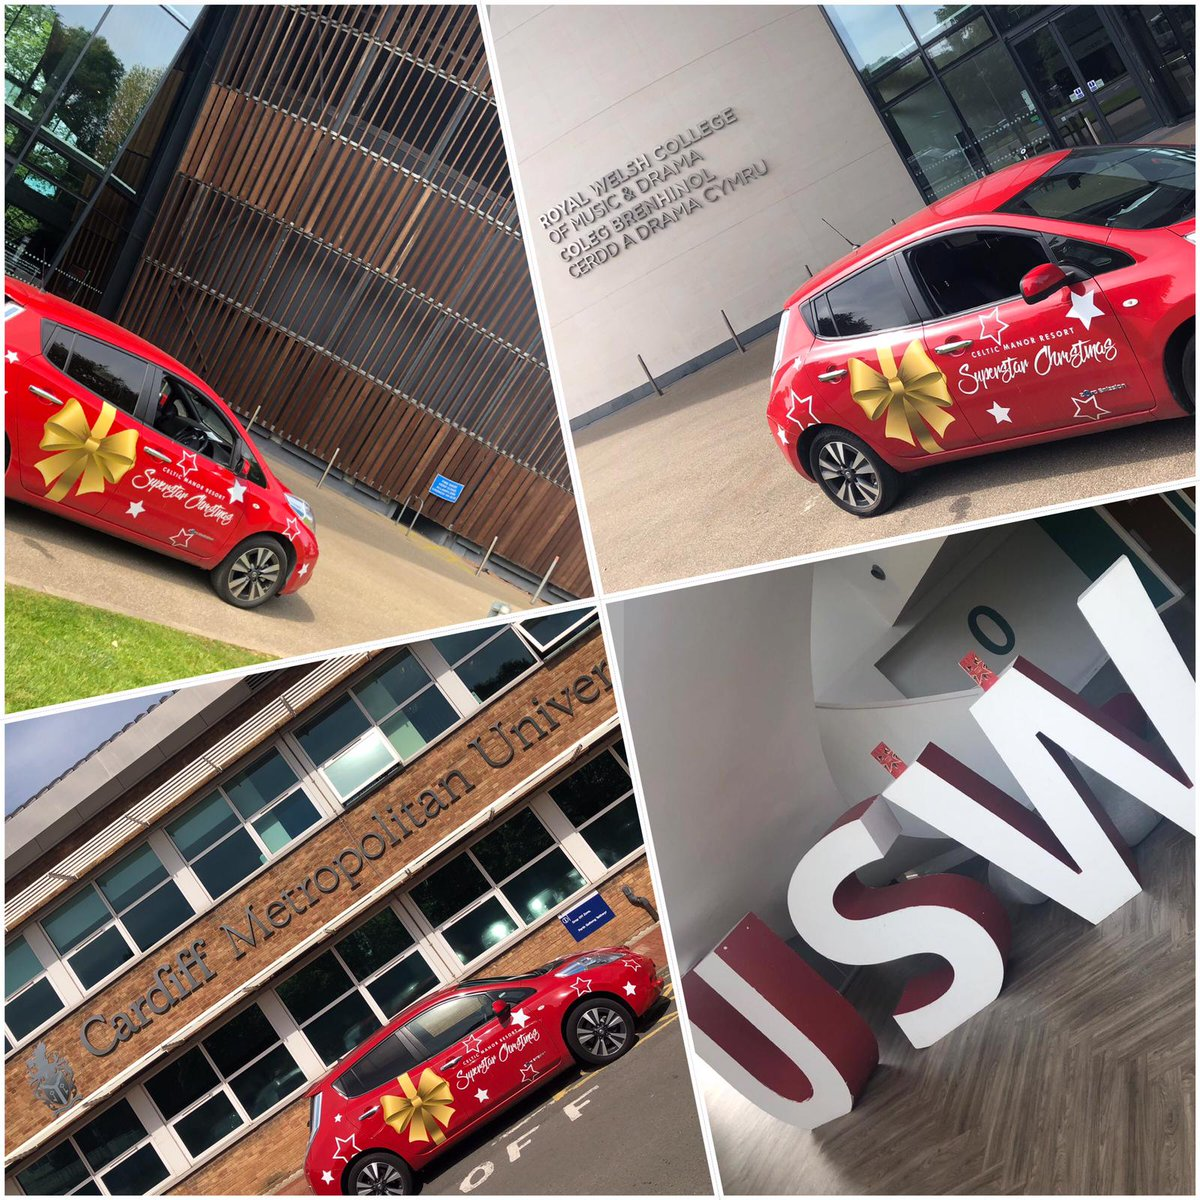 Our reliant red robin is out on the road today sharing good cheer & info about our Superstar #Christmas Parties! We know it seems a tad early, but get your annual office party sorted now & you can relax! Plus, get £5 off per person before 31st May! http://bit.ly/SuperStarXmas